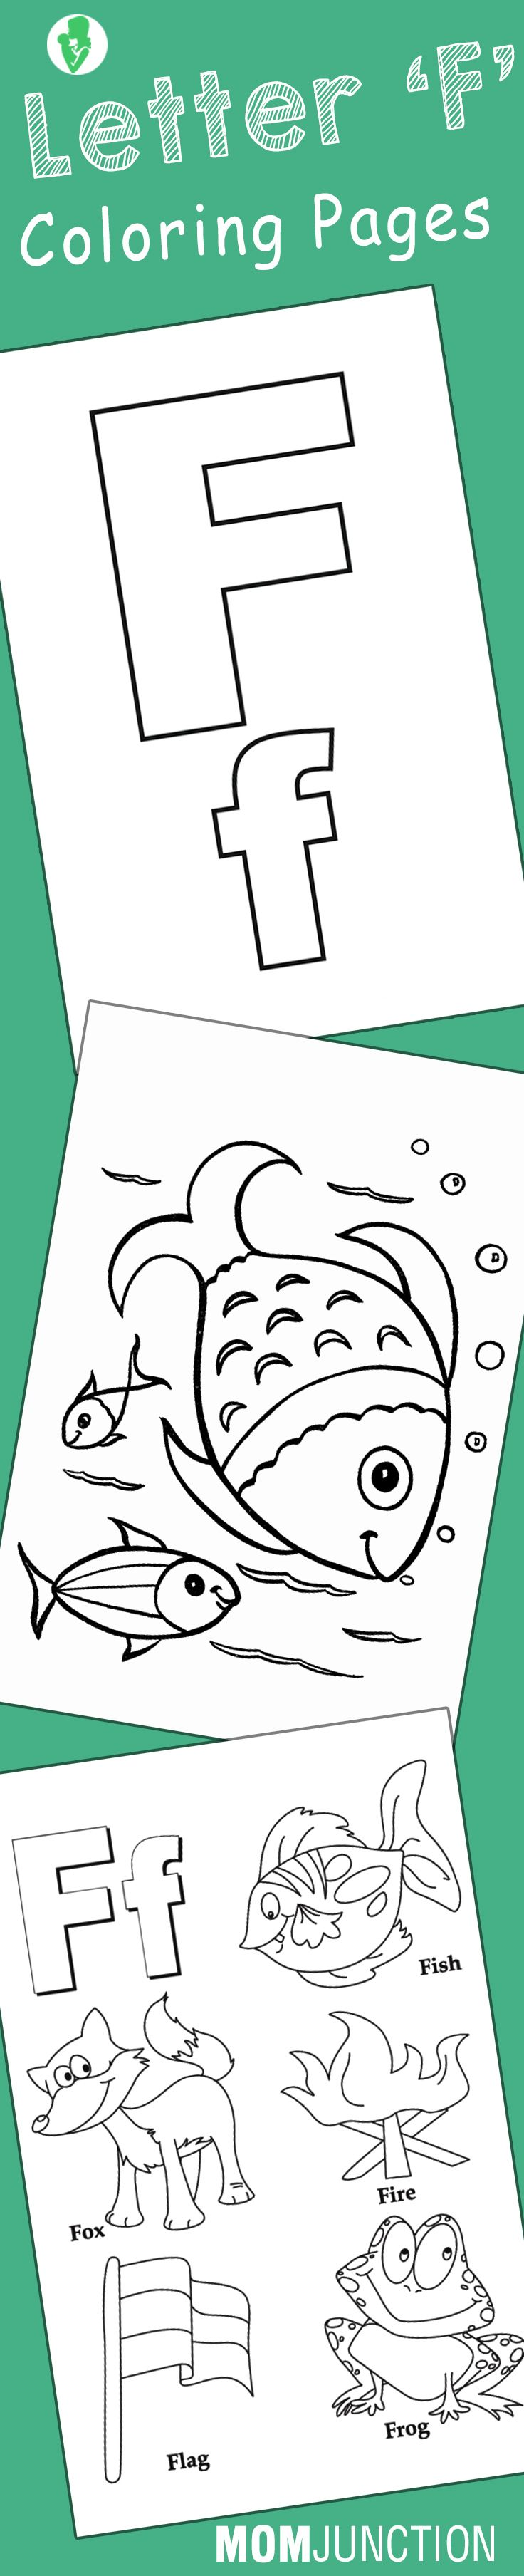 F coloring pages for preschoolers - F Coloring Pages For Preschoolers 43